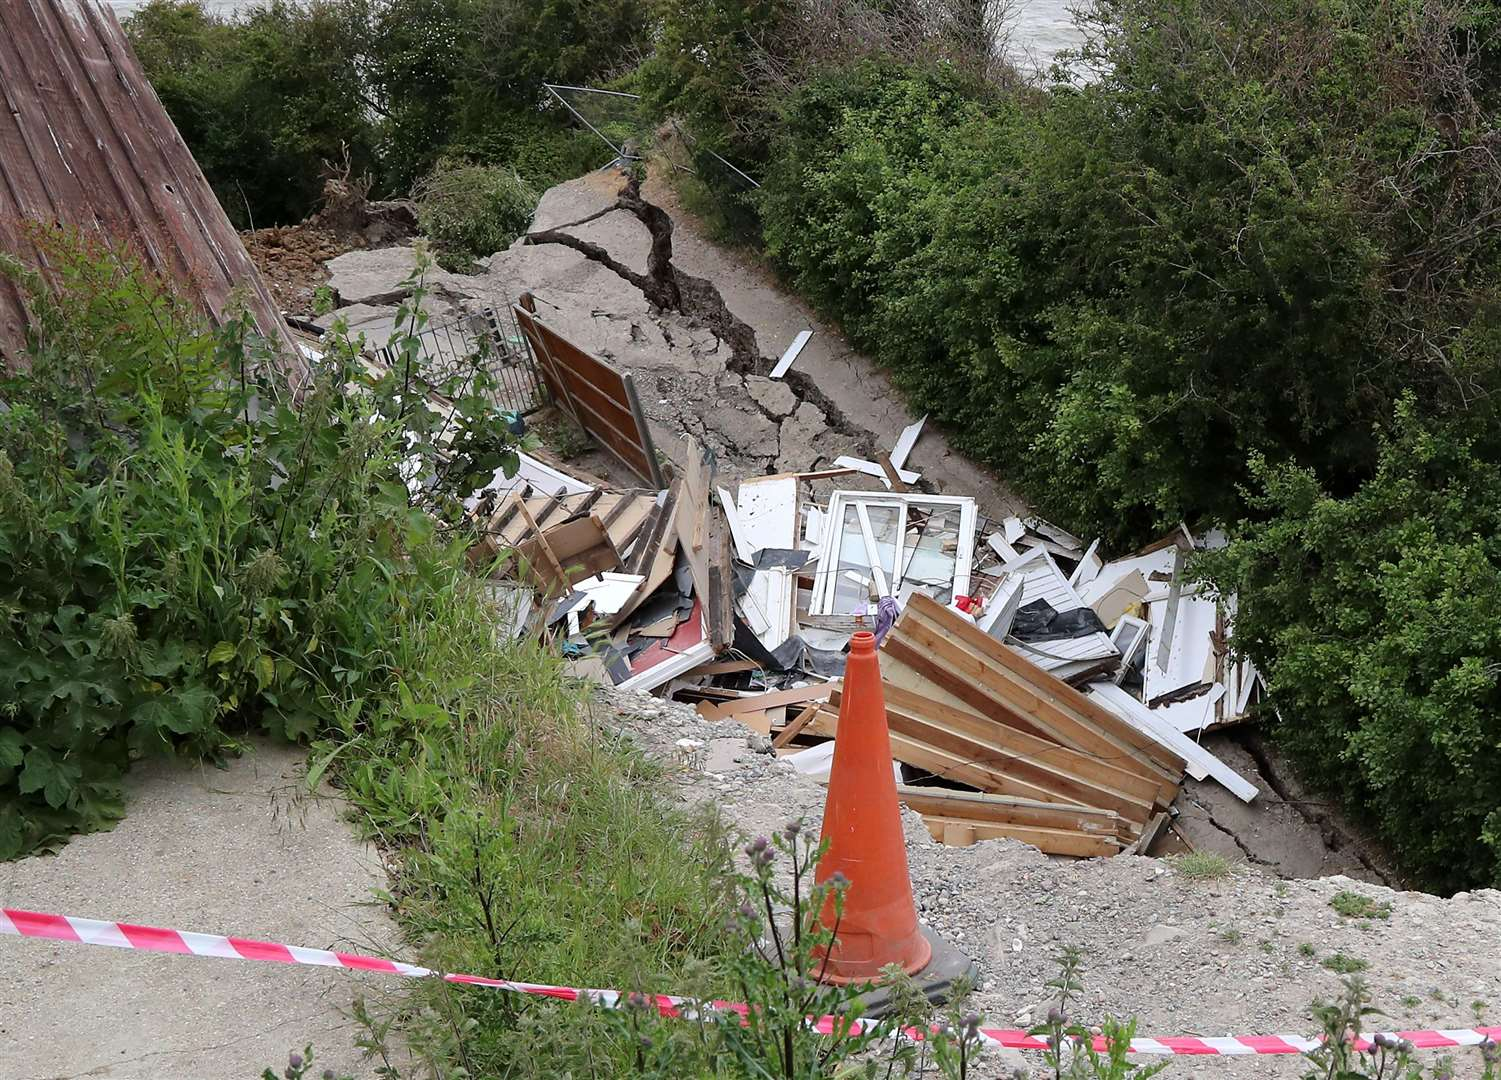 A landslip caused a bungalow to collapse towards the sea in an incident last year (Gareth Fuller/PA)